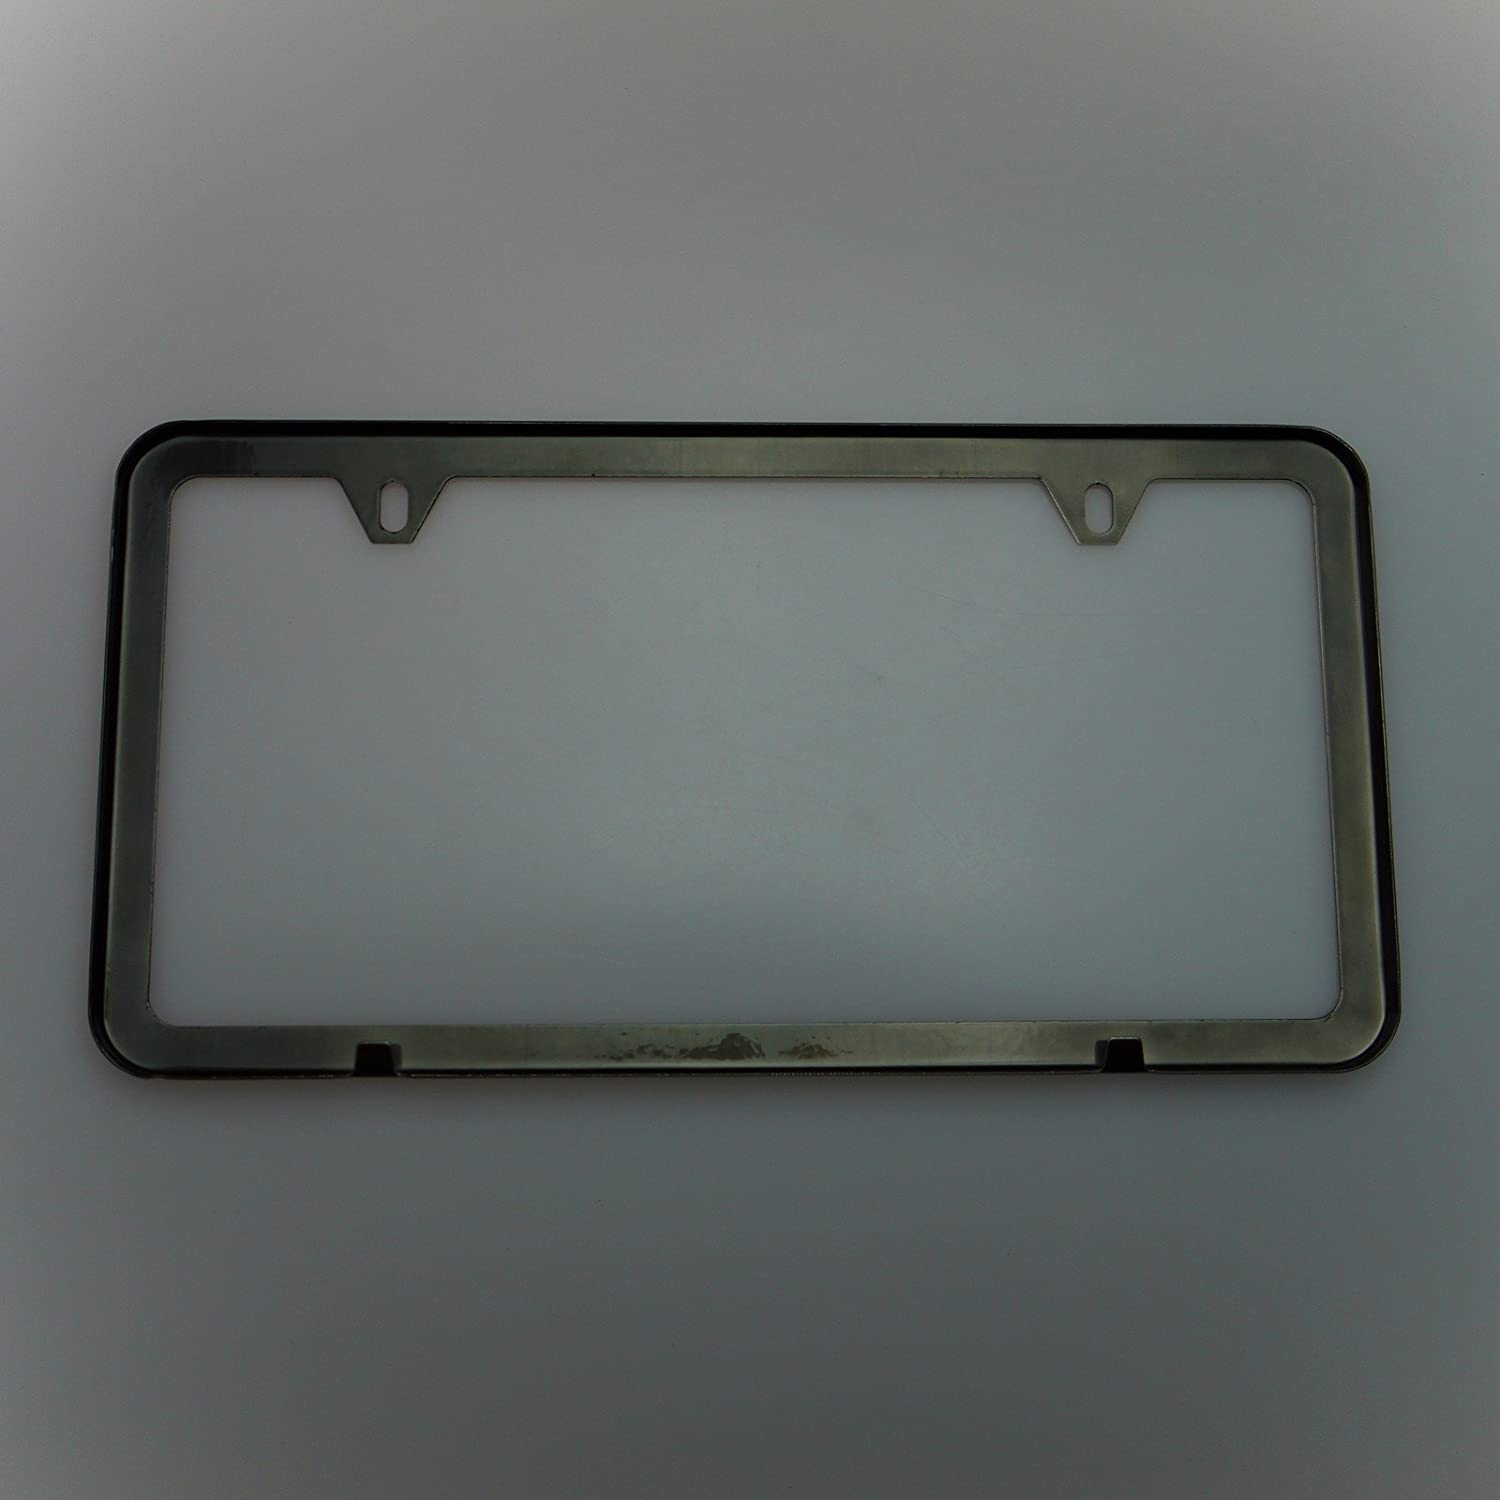 Amazon.com: Circle Cool Black Chrome Powder Coated Stainless Steel License Plate Slim Two Hole Frame Holder Bracket: Automotive